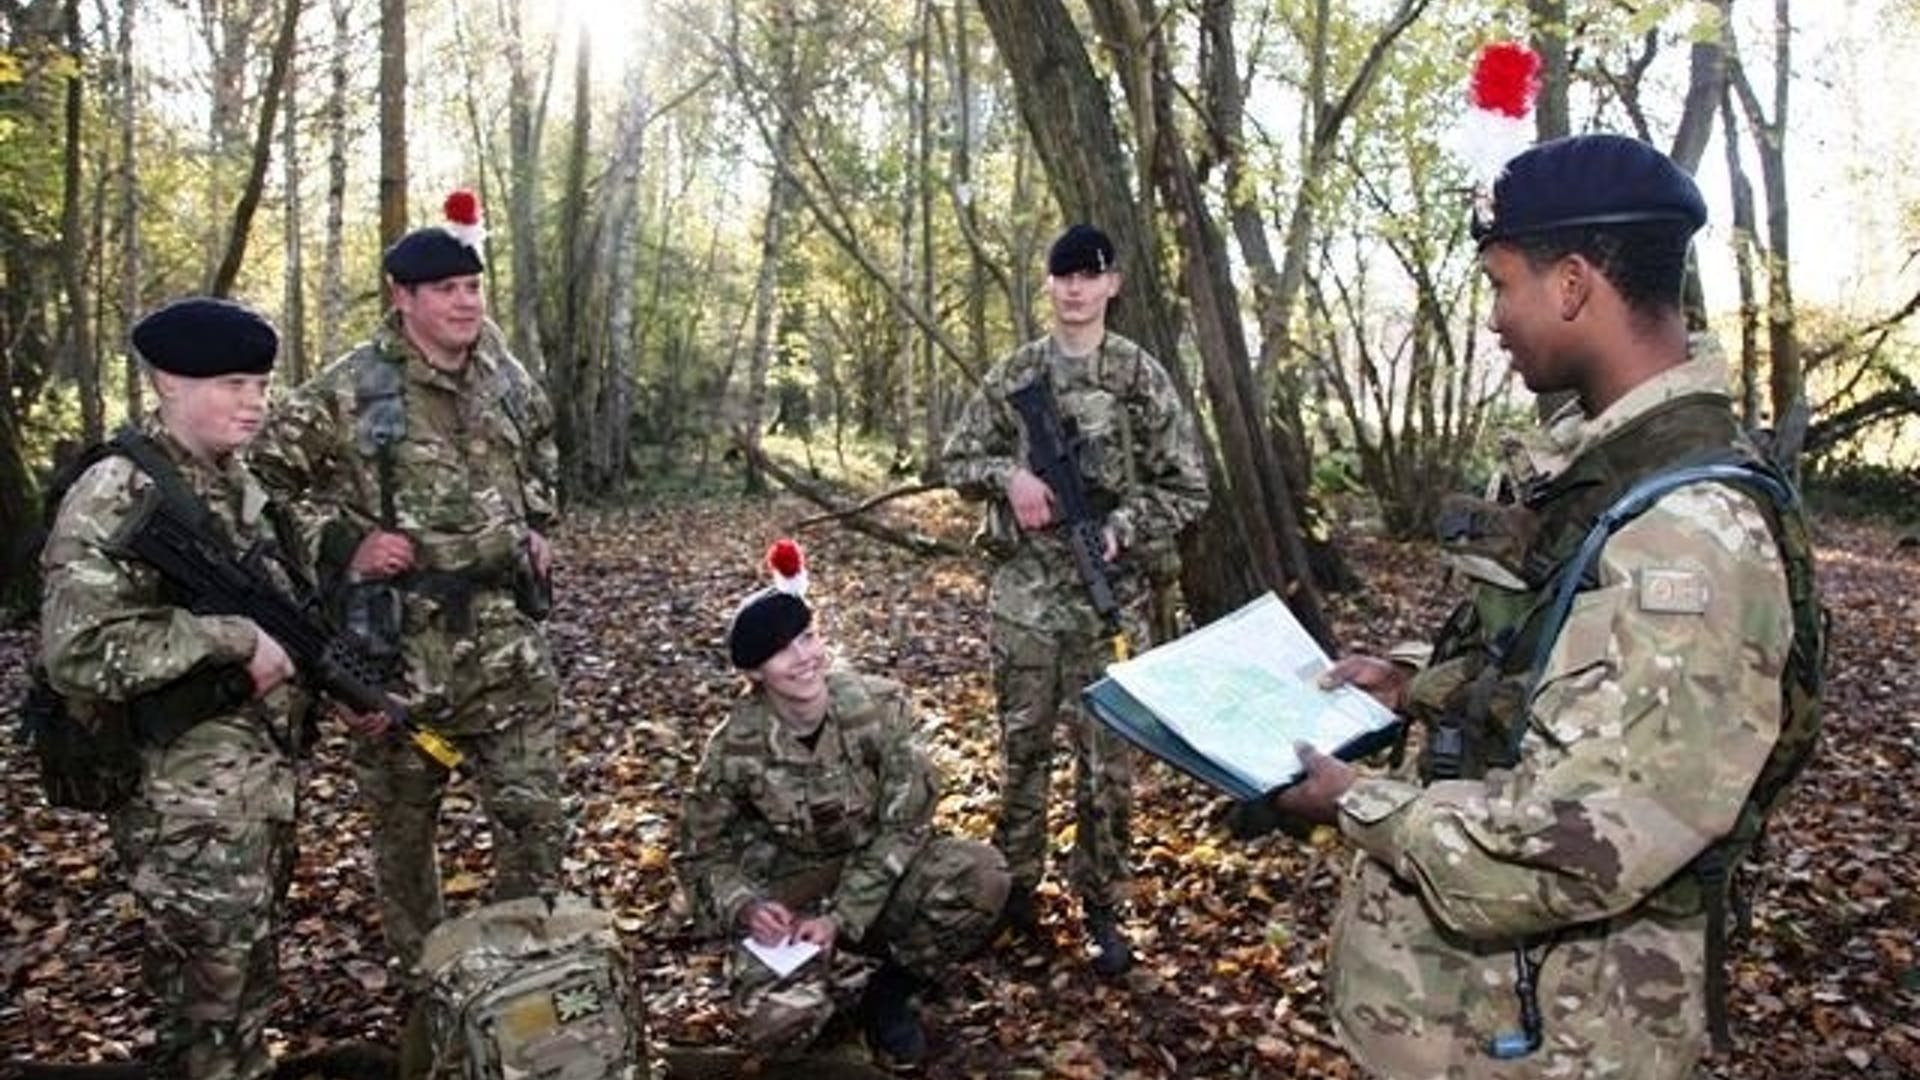 Army cadets navigation exercise 640 434 c1